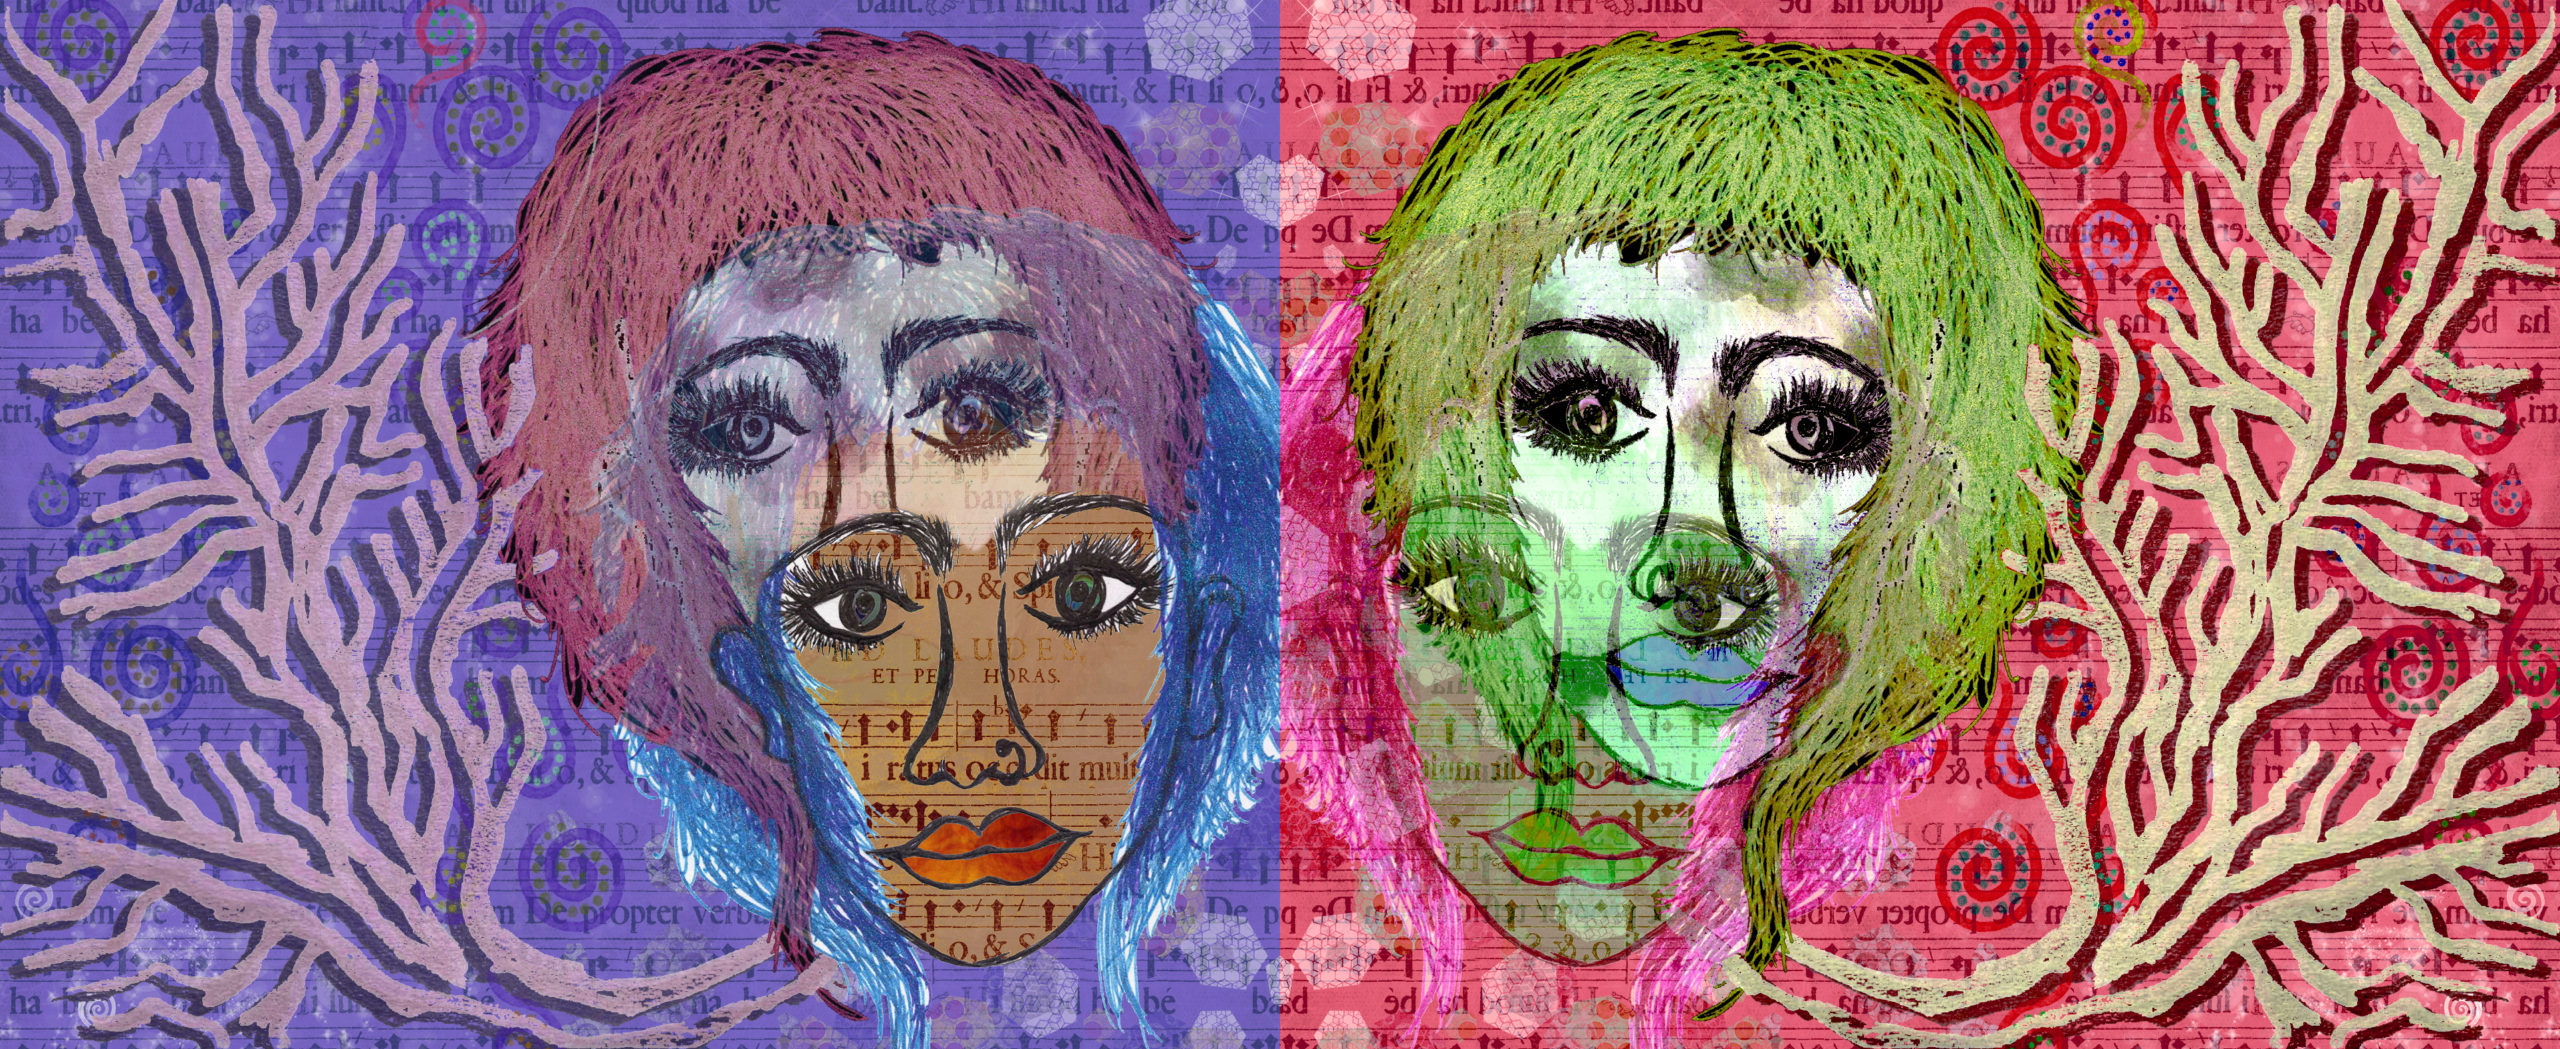 The artwork consists of two images side by side. They are horizontally flipped versions of the same picture, also edited with different colors, highlights, and shadows. The picture consists of two faces, one partly superimposed onto the other: a femme-presenting person with layered short hair (mostly chin-length with bangs), with striking eyelashes and eyebrows, also wearing a nose ring. To the side of the person's face, there is a tree-like structure (without leaves) branching out towards the edge of the picture. In the background, there are various swirls and hexagons set against stylized Lorem Ipsum text. The image on the left has a purple background; a mauve tree structure; and the two faces have blue and pink hair respectively. The face in front with blue hair has more dominant opacity, and the person's skin colour is brown. The face in back has ghostly white skin. The image on the right has a bright pink background; a dull green tree structure; and the two faces have green and pink hair respectively. The face in back with green hair has more dominant opacity, and the person's skin colour is ghostly white. The face in front has dull brown skin, but is quite faded.